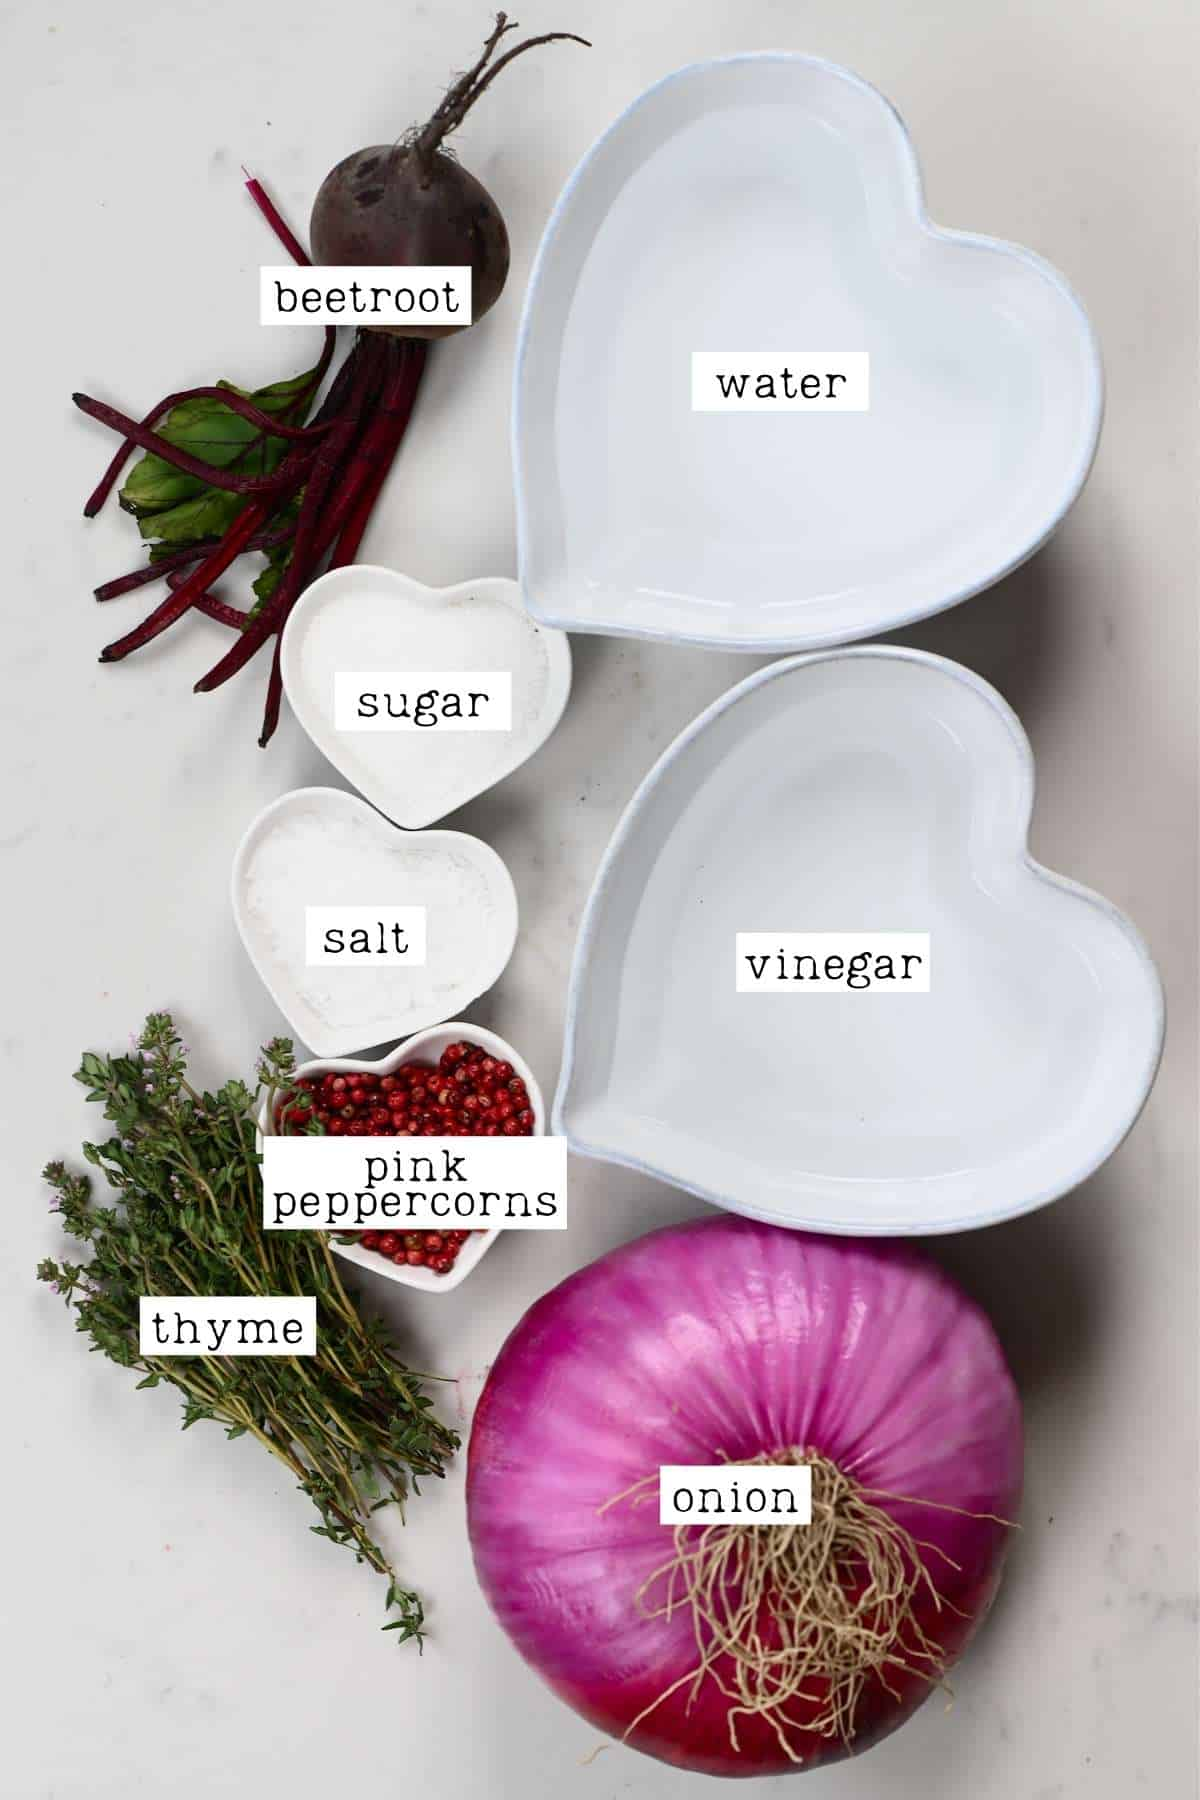 Ingredients for pickled onions